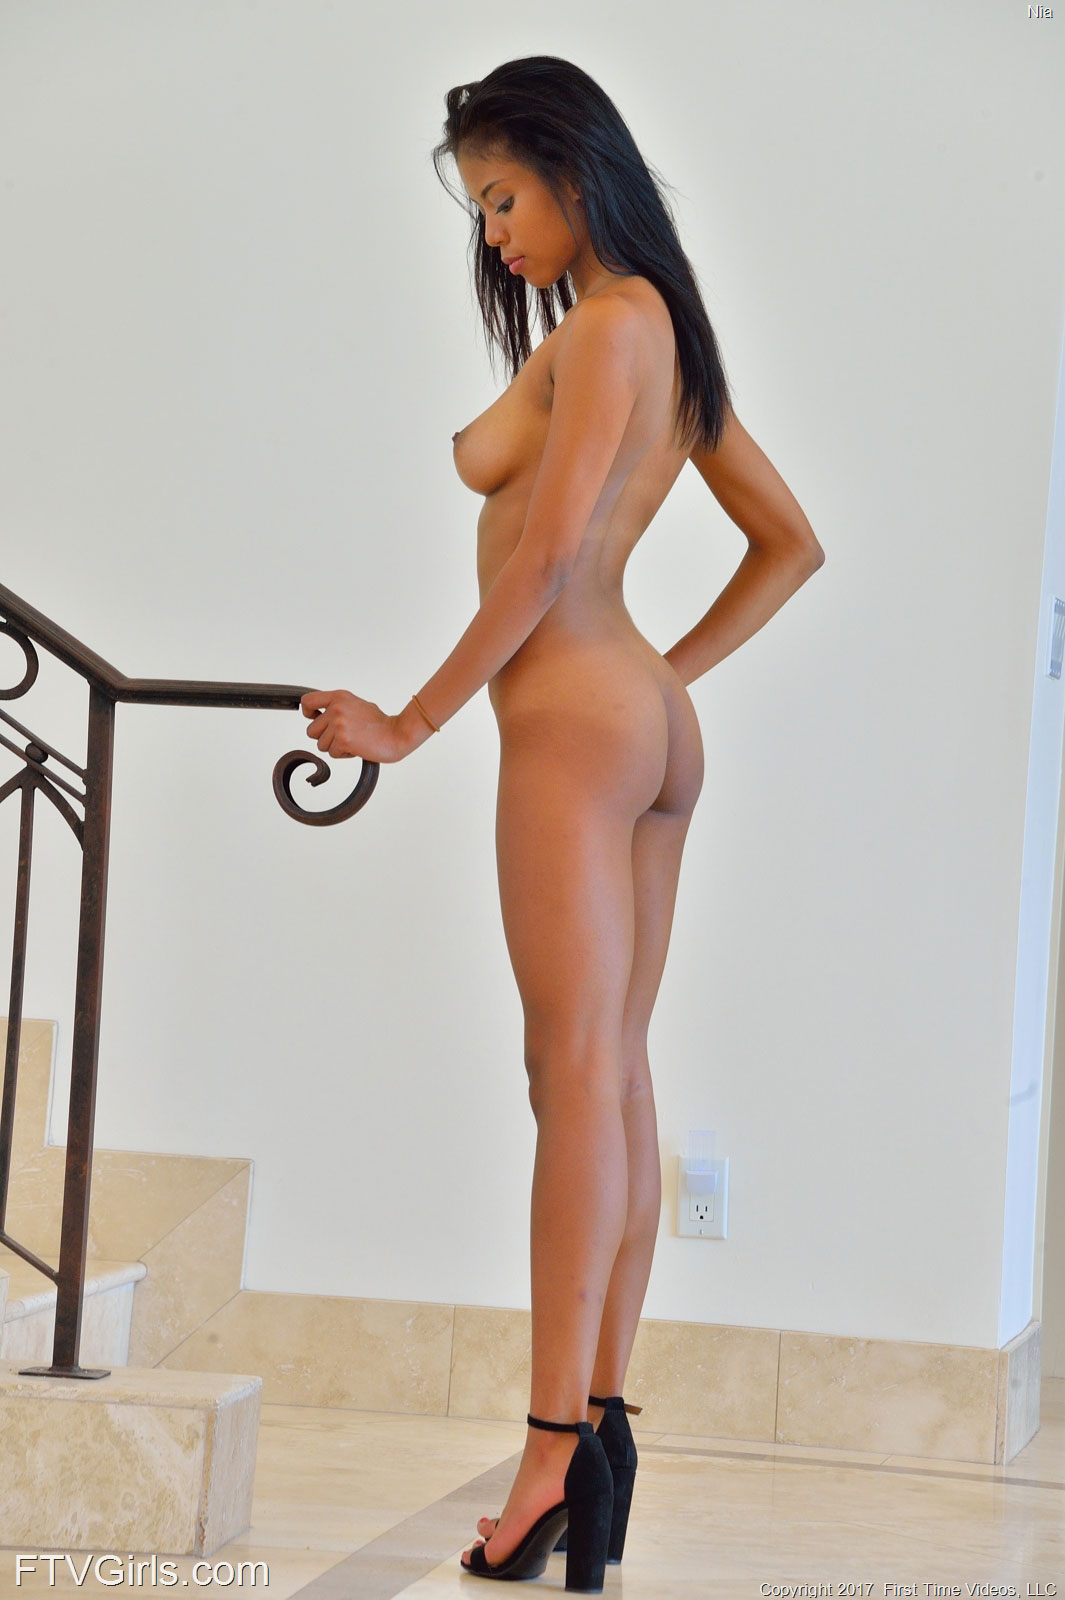 Nia FTV Girls | She is a cute half-black girl (very sexual)